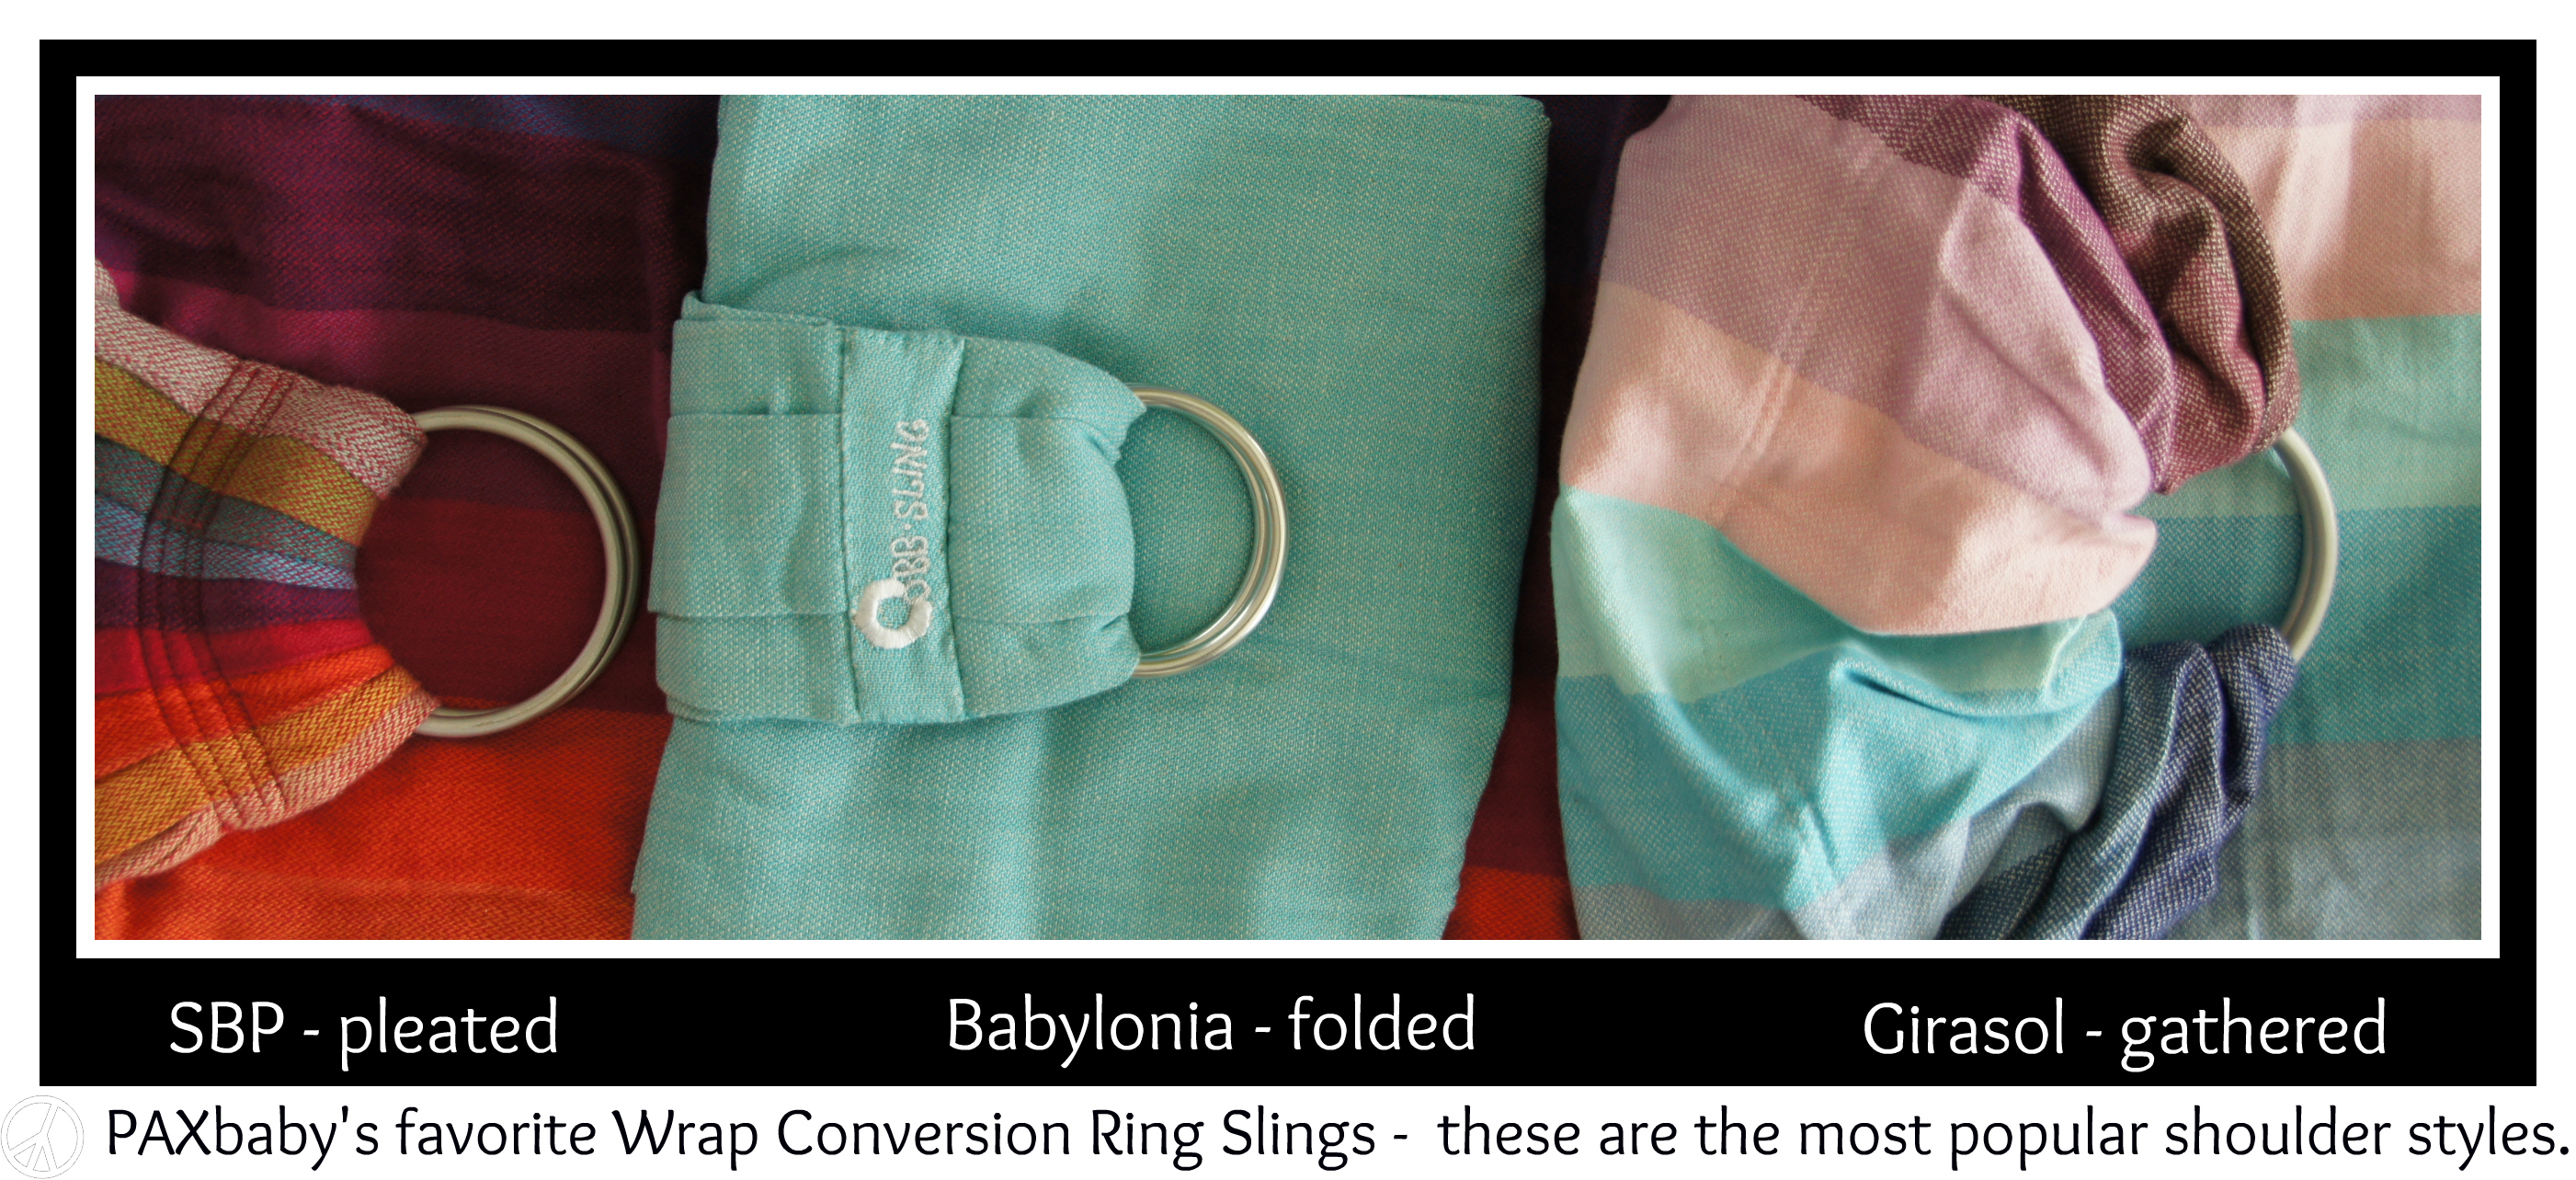 PAXbaby wrap conversion ring sling shoulder styles sbp wcrs babylonia bb sling girasol pleats pleated gathered folded